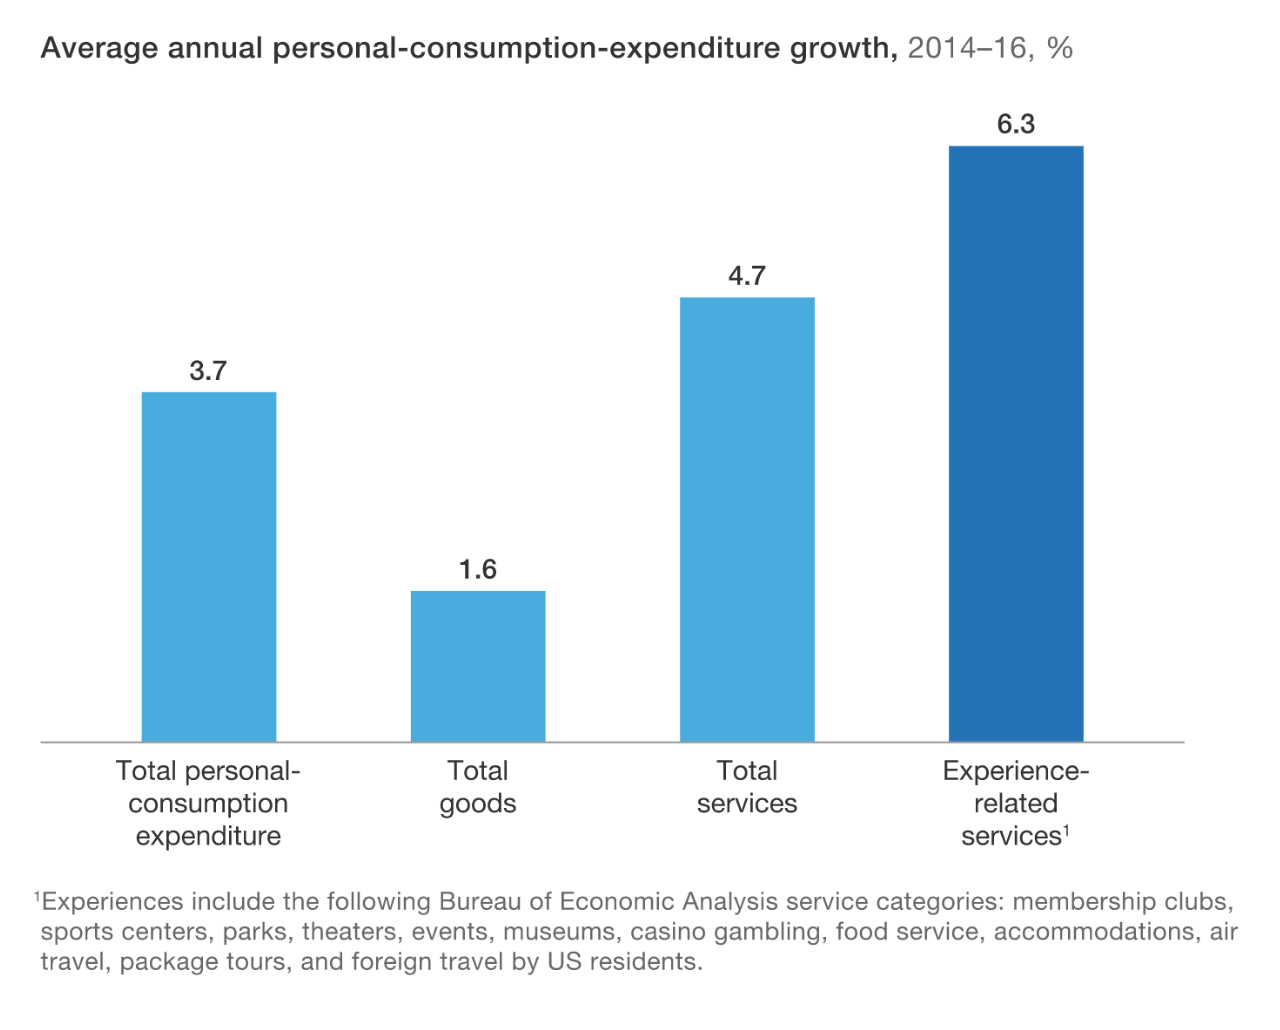 Average annual personal consumption expenditure growth